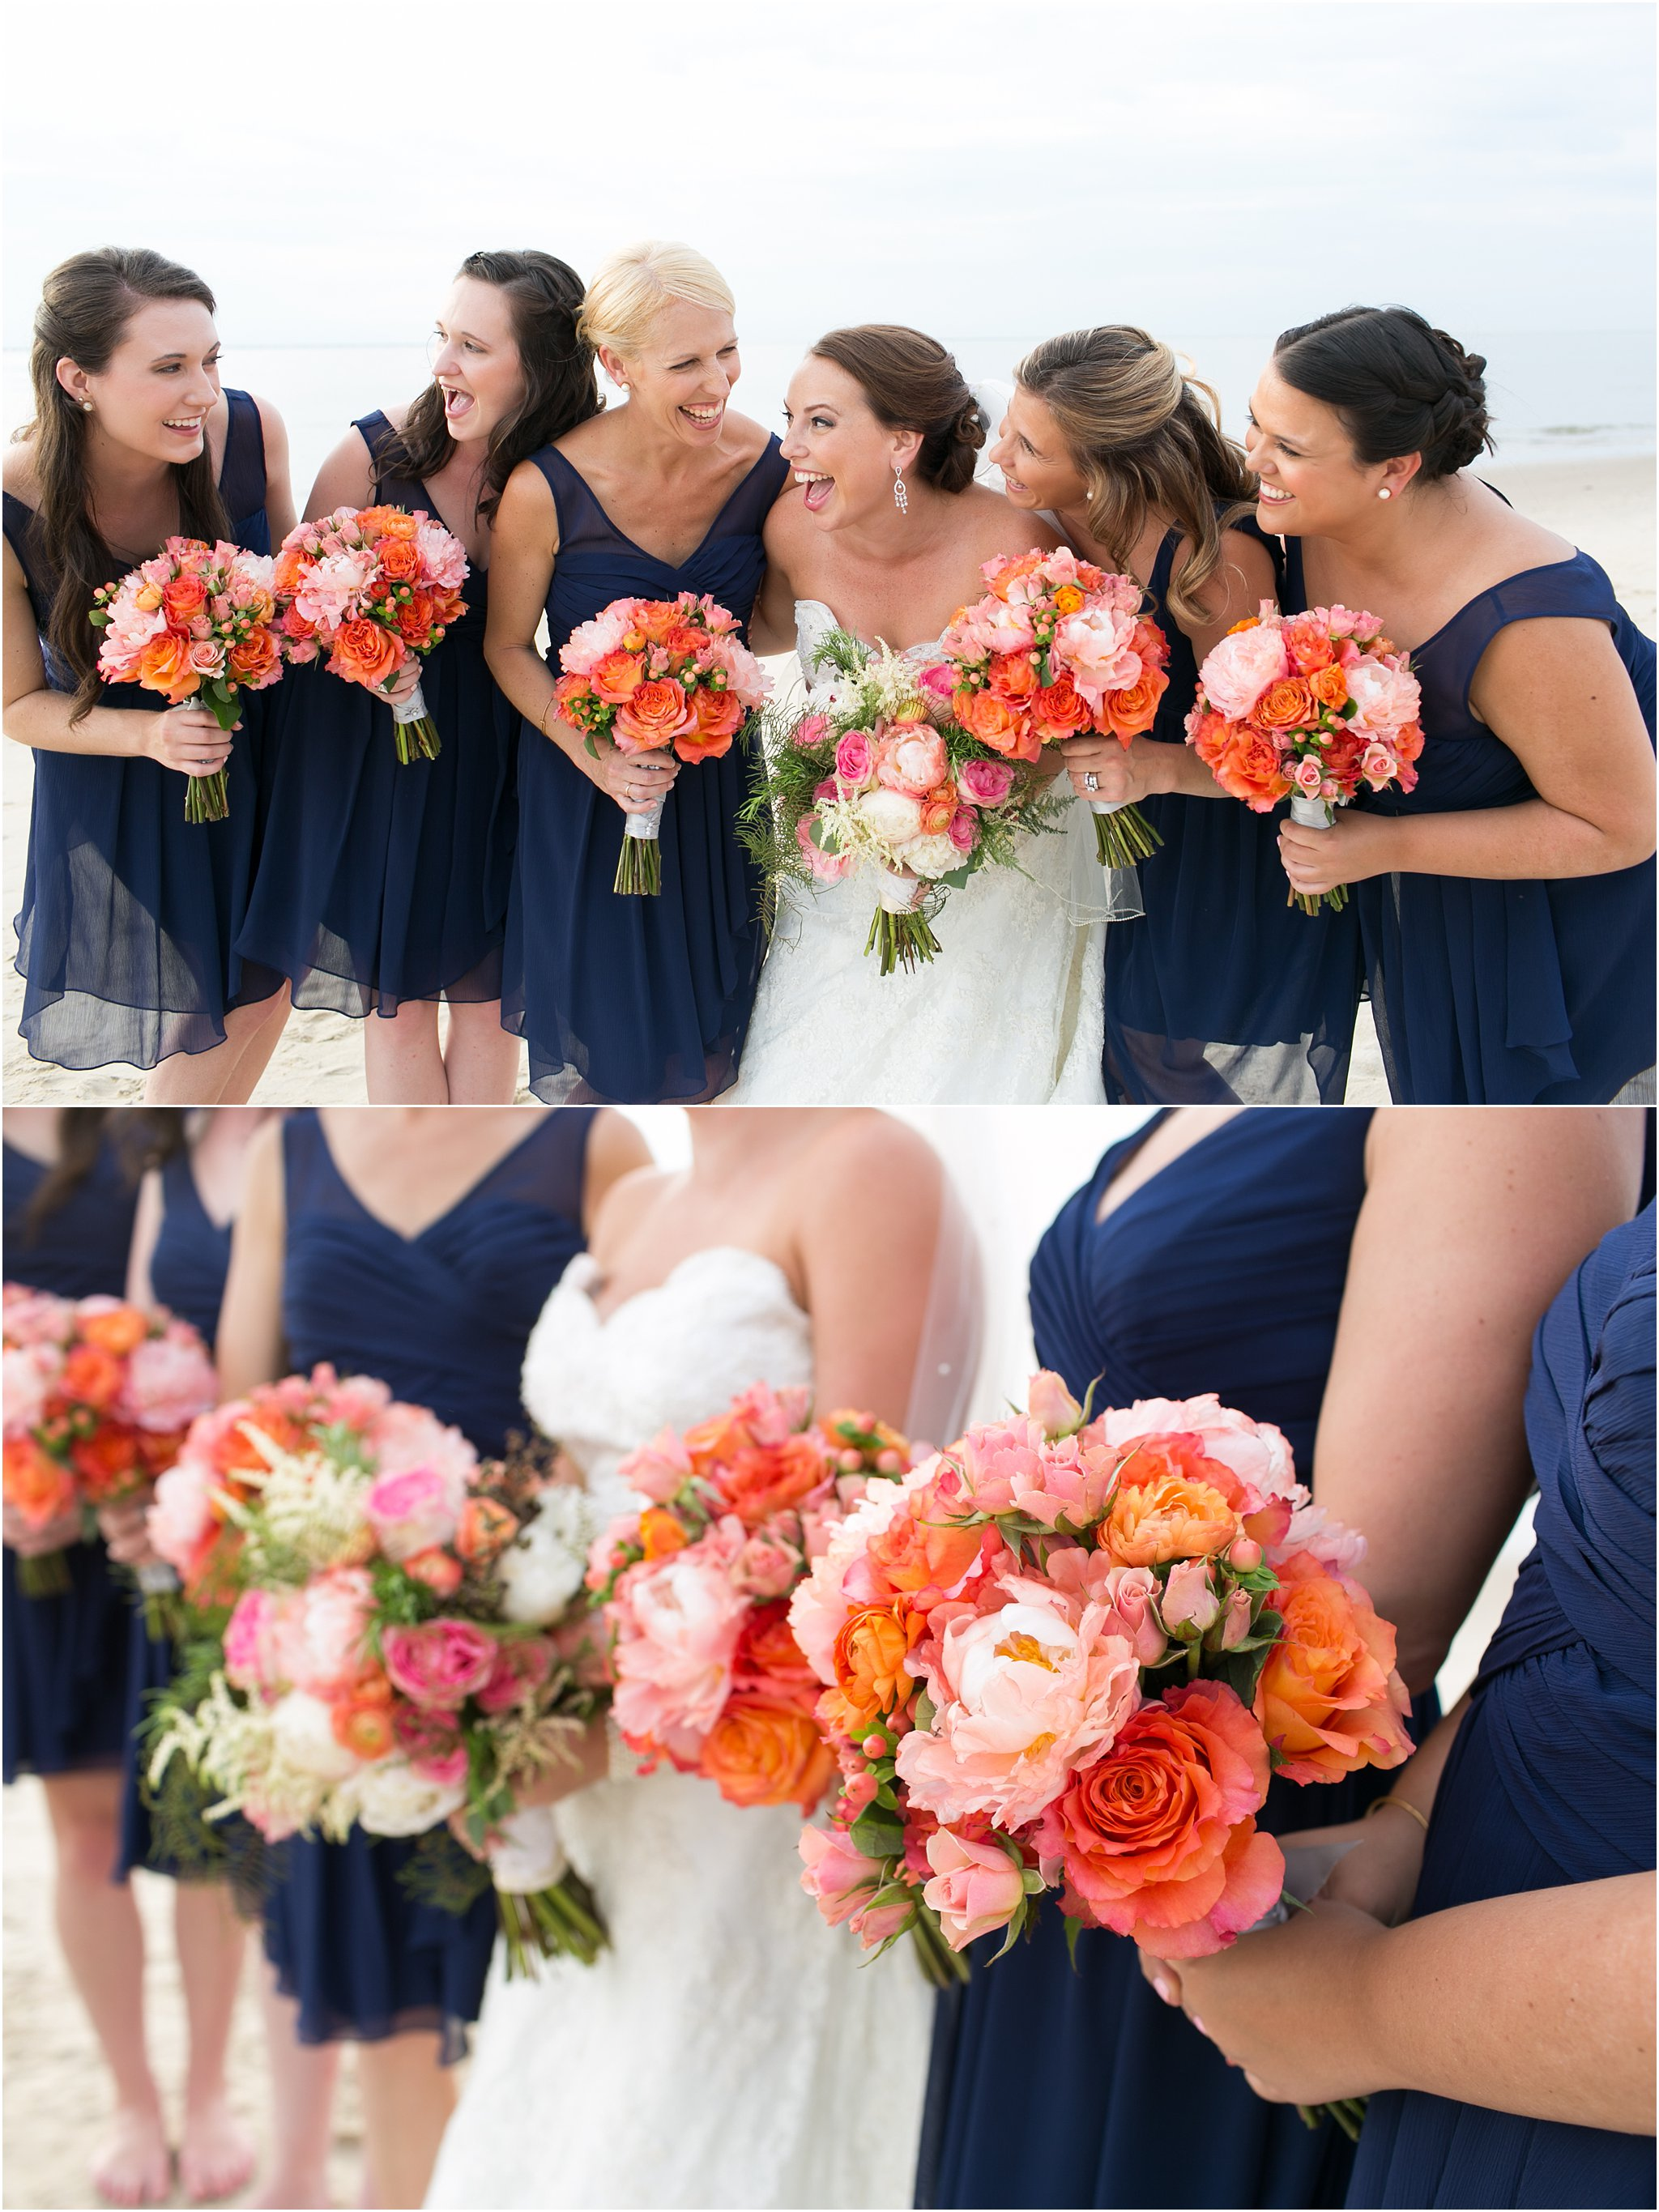 jessica_ryan_photography_wedding_photography_virginiabeach_virginia_candid_authentic_wedding_portraits_marina_shores_yacht_club_chesapeake_bay_1865